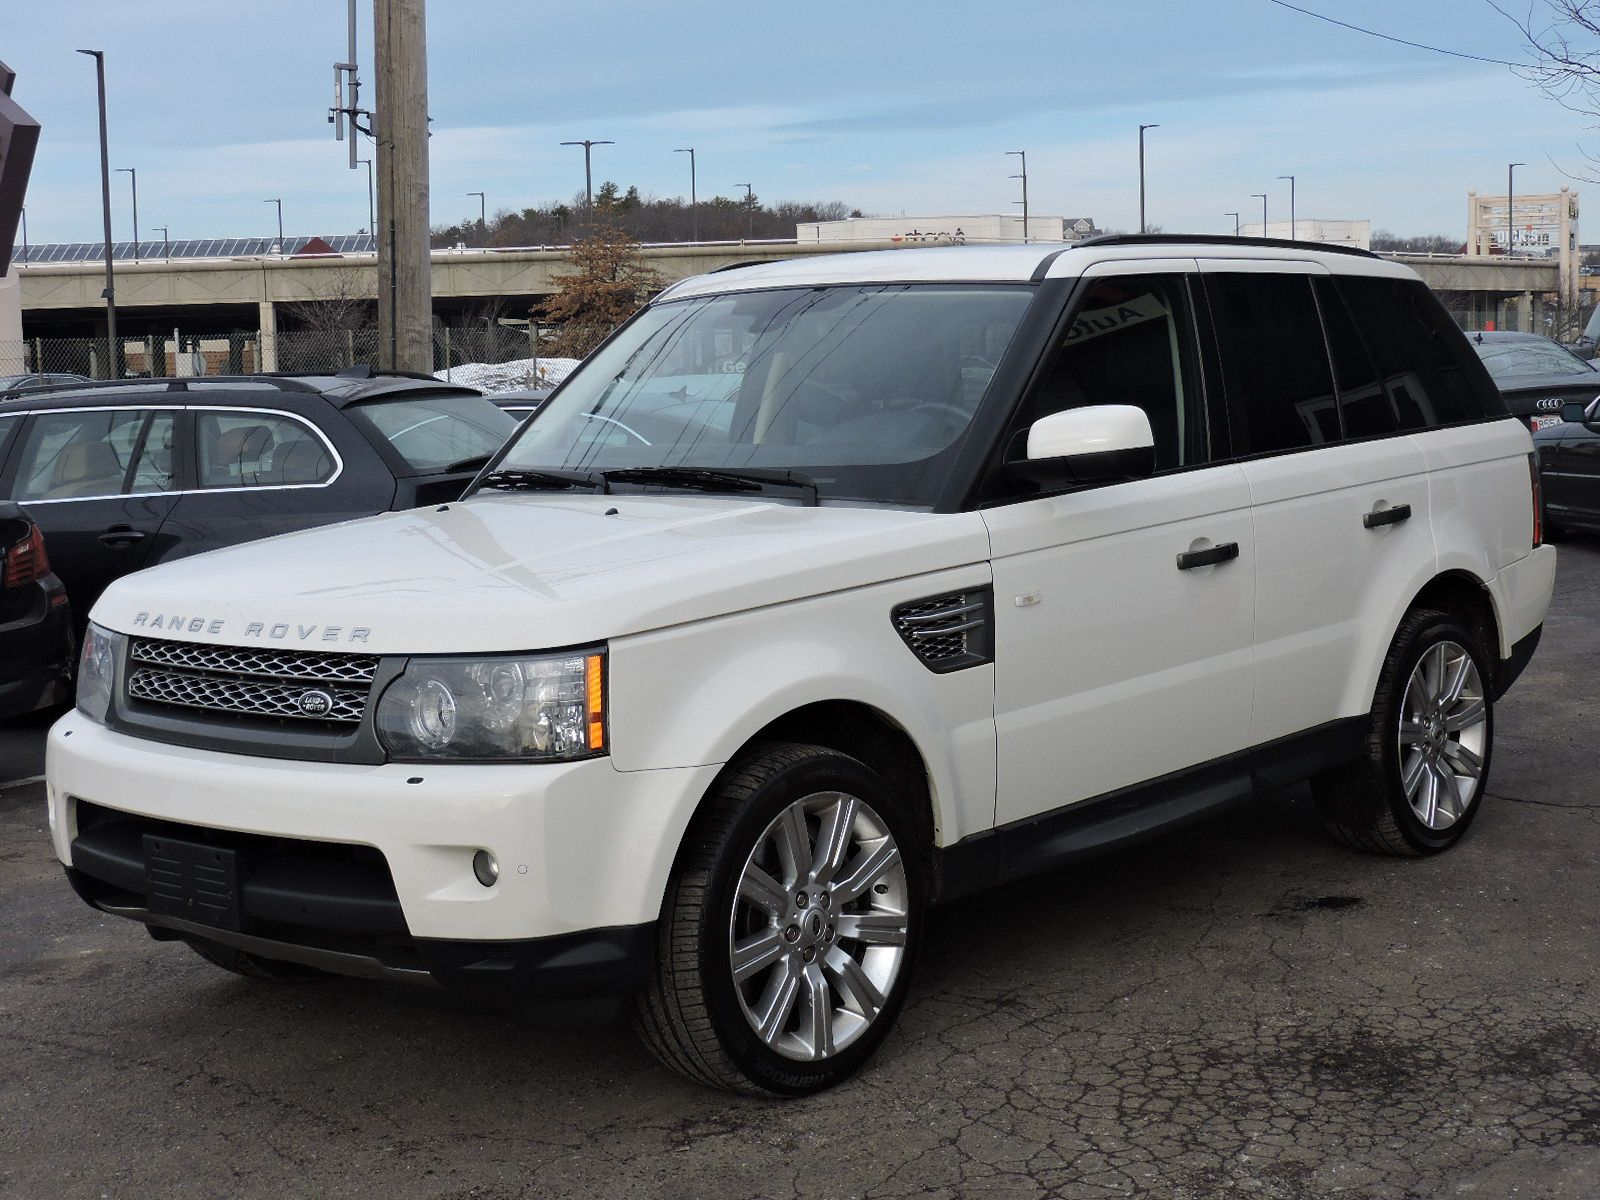 http://saugusautomall.com/uimages/vehicle/3745189/full/2010-Land-Rover-Range-Rover-Sport-SC-SALSH2E46AA248945-7163.jpeg